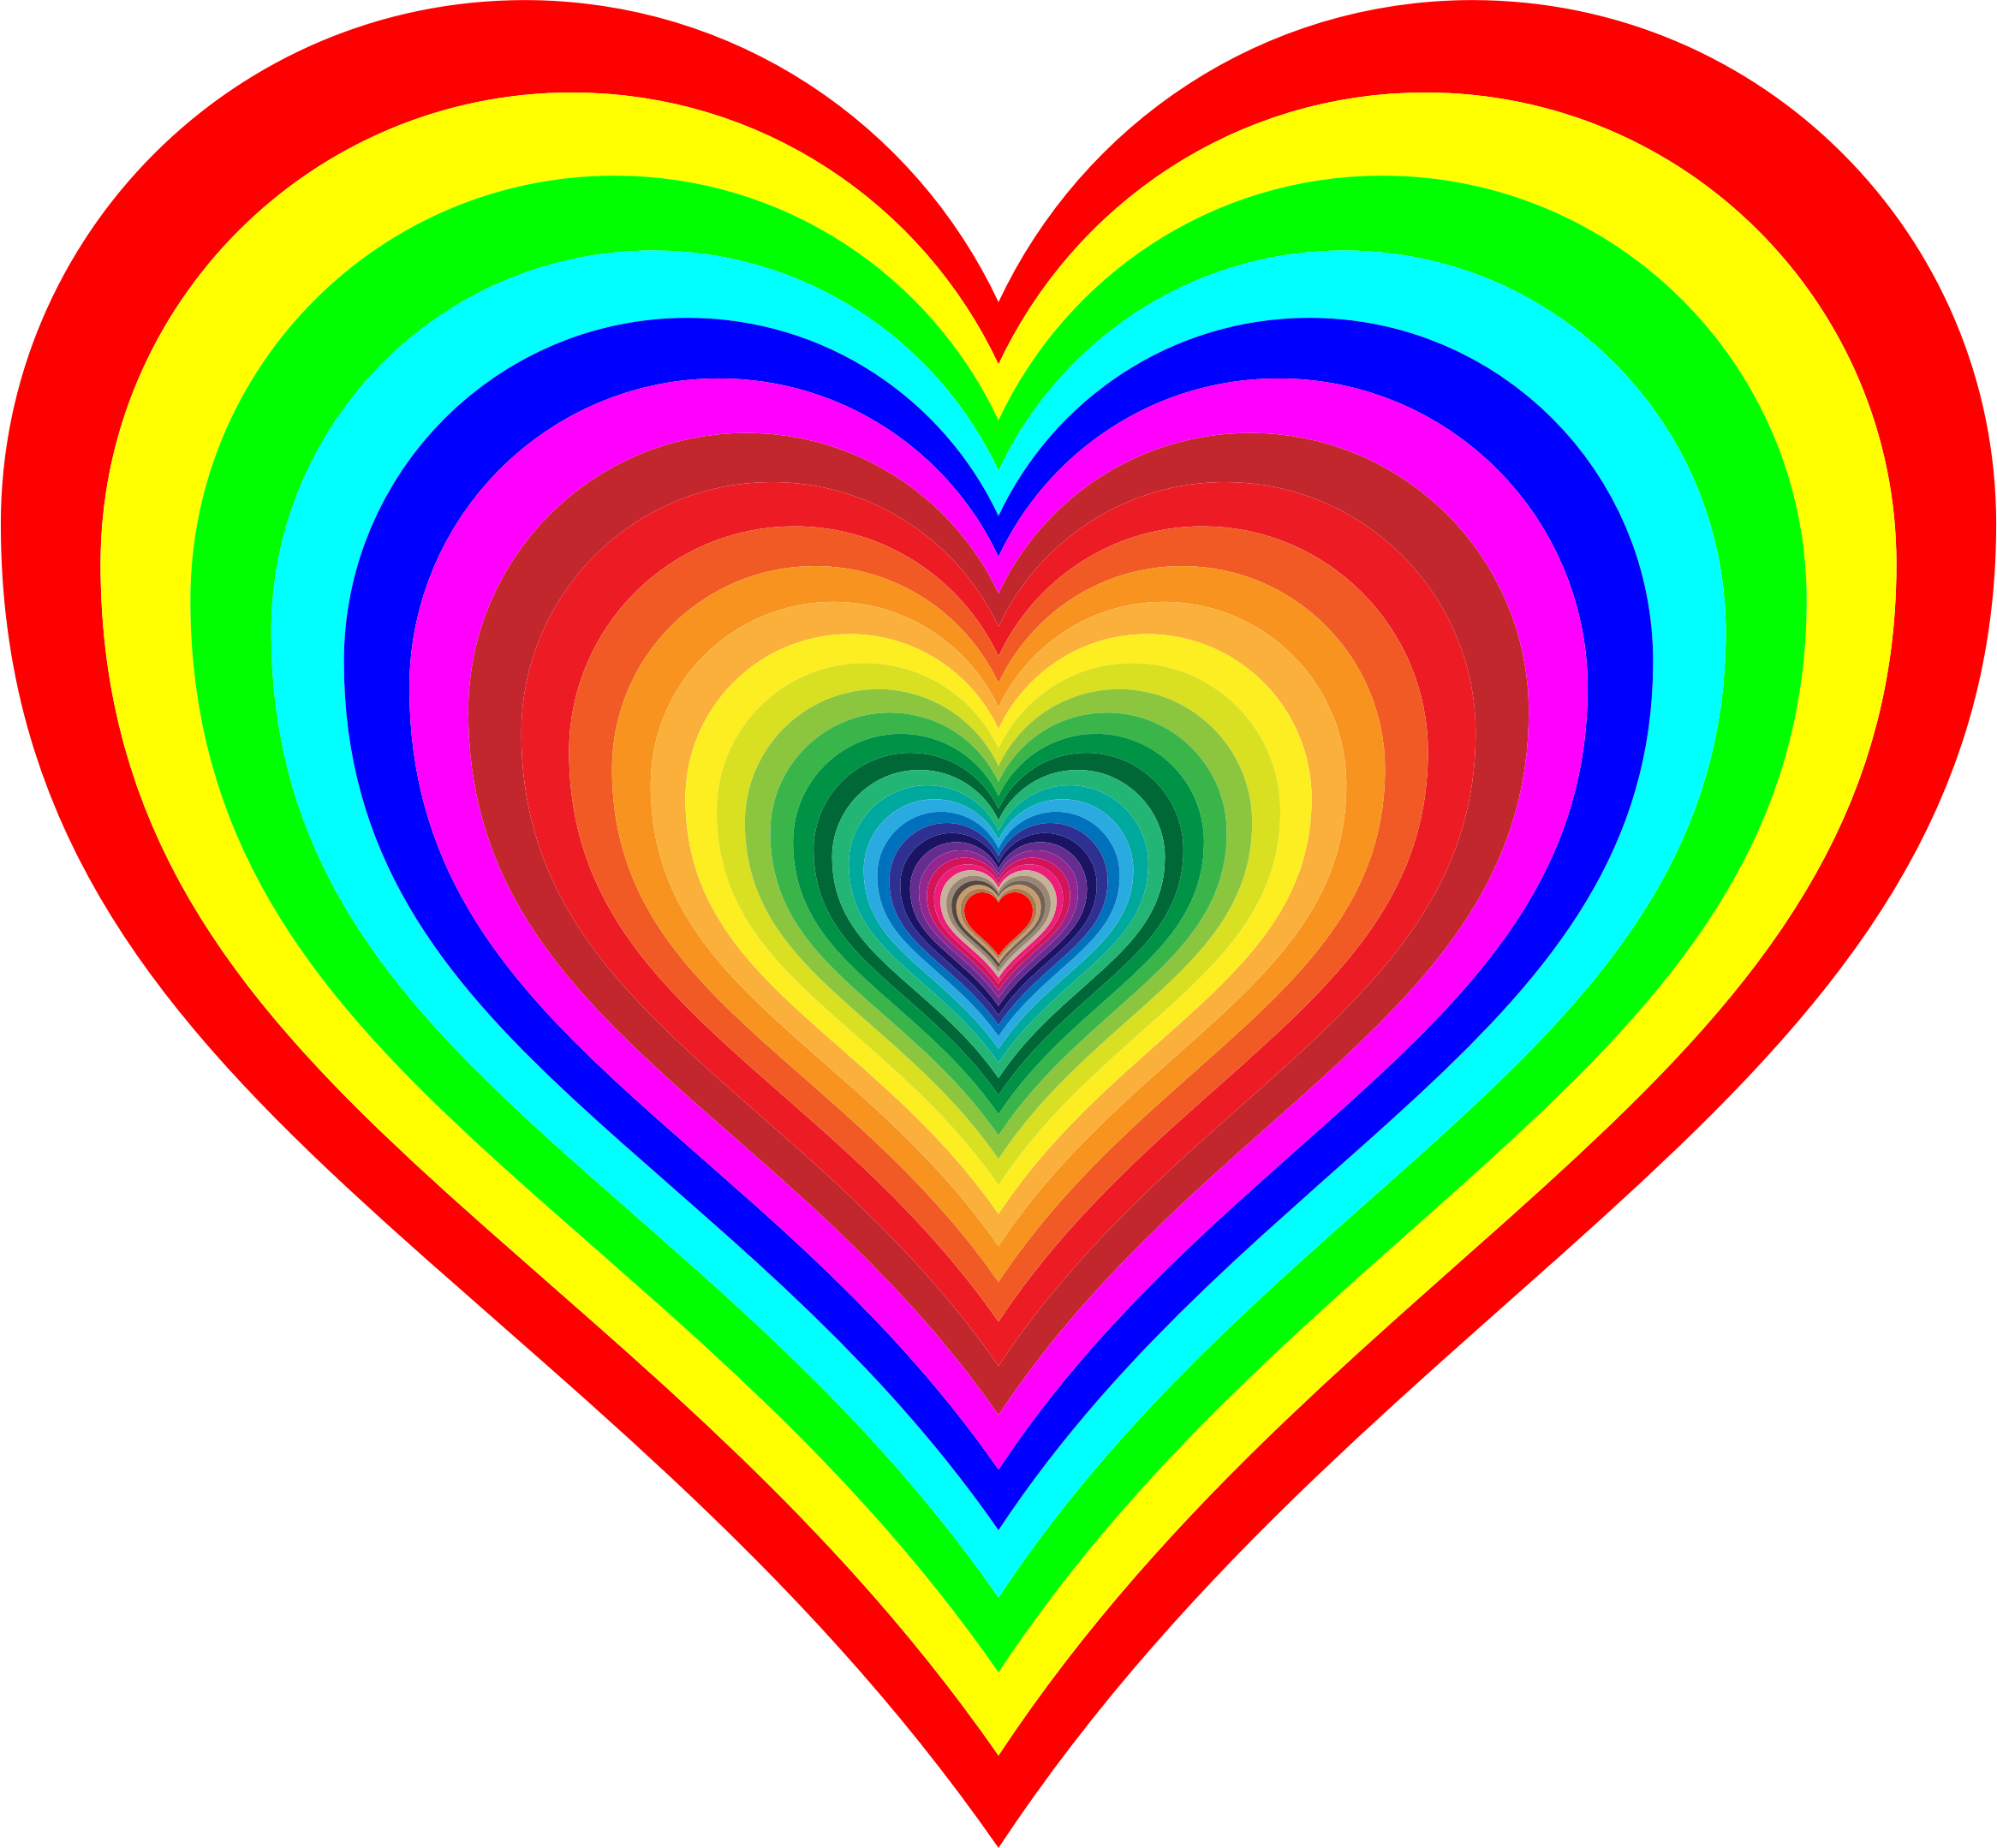 Rainbowrific Heart by GDJ